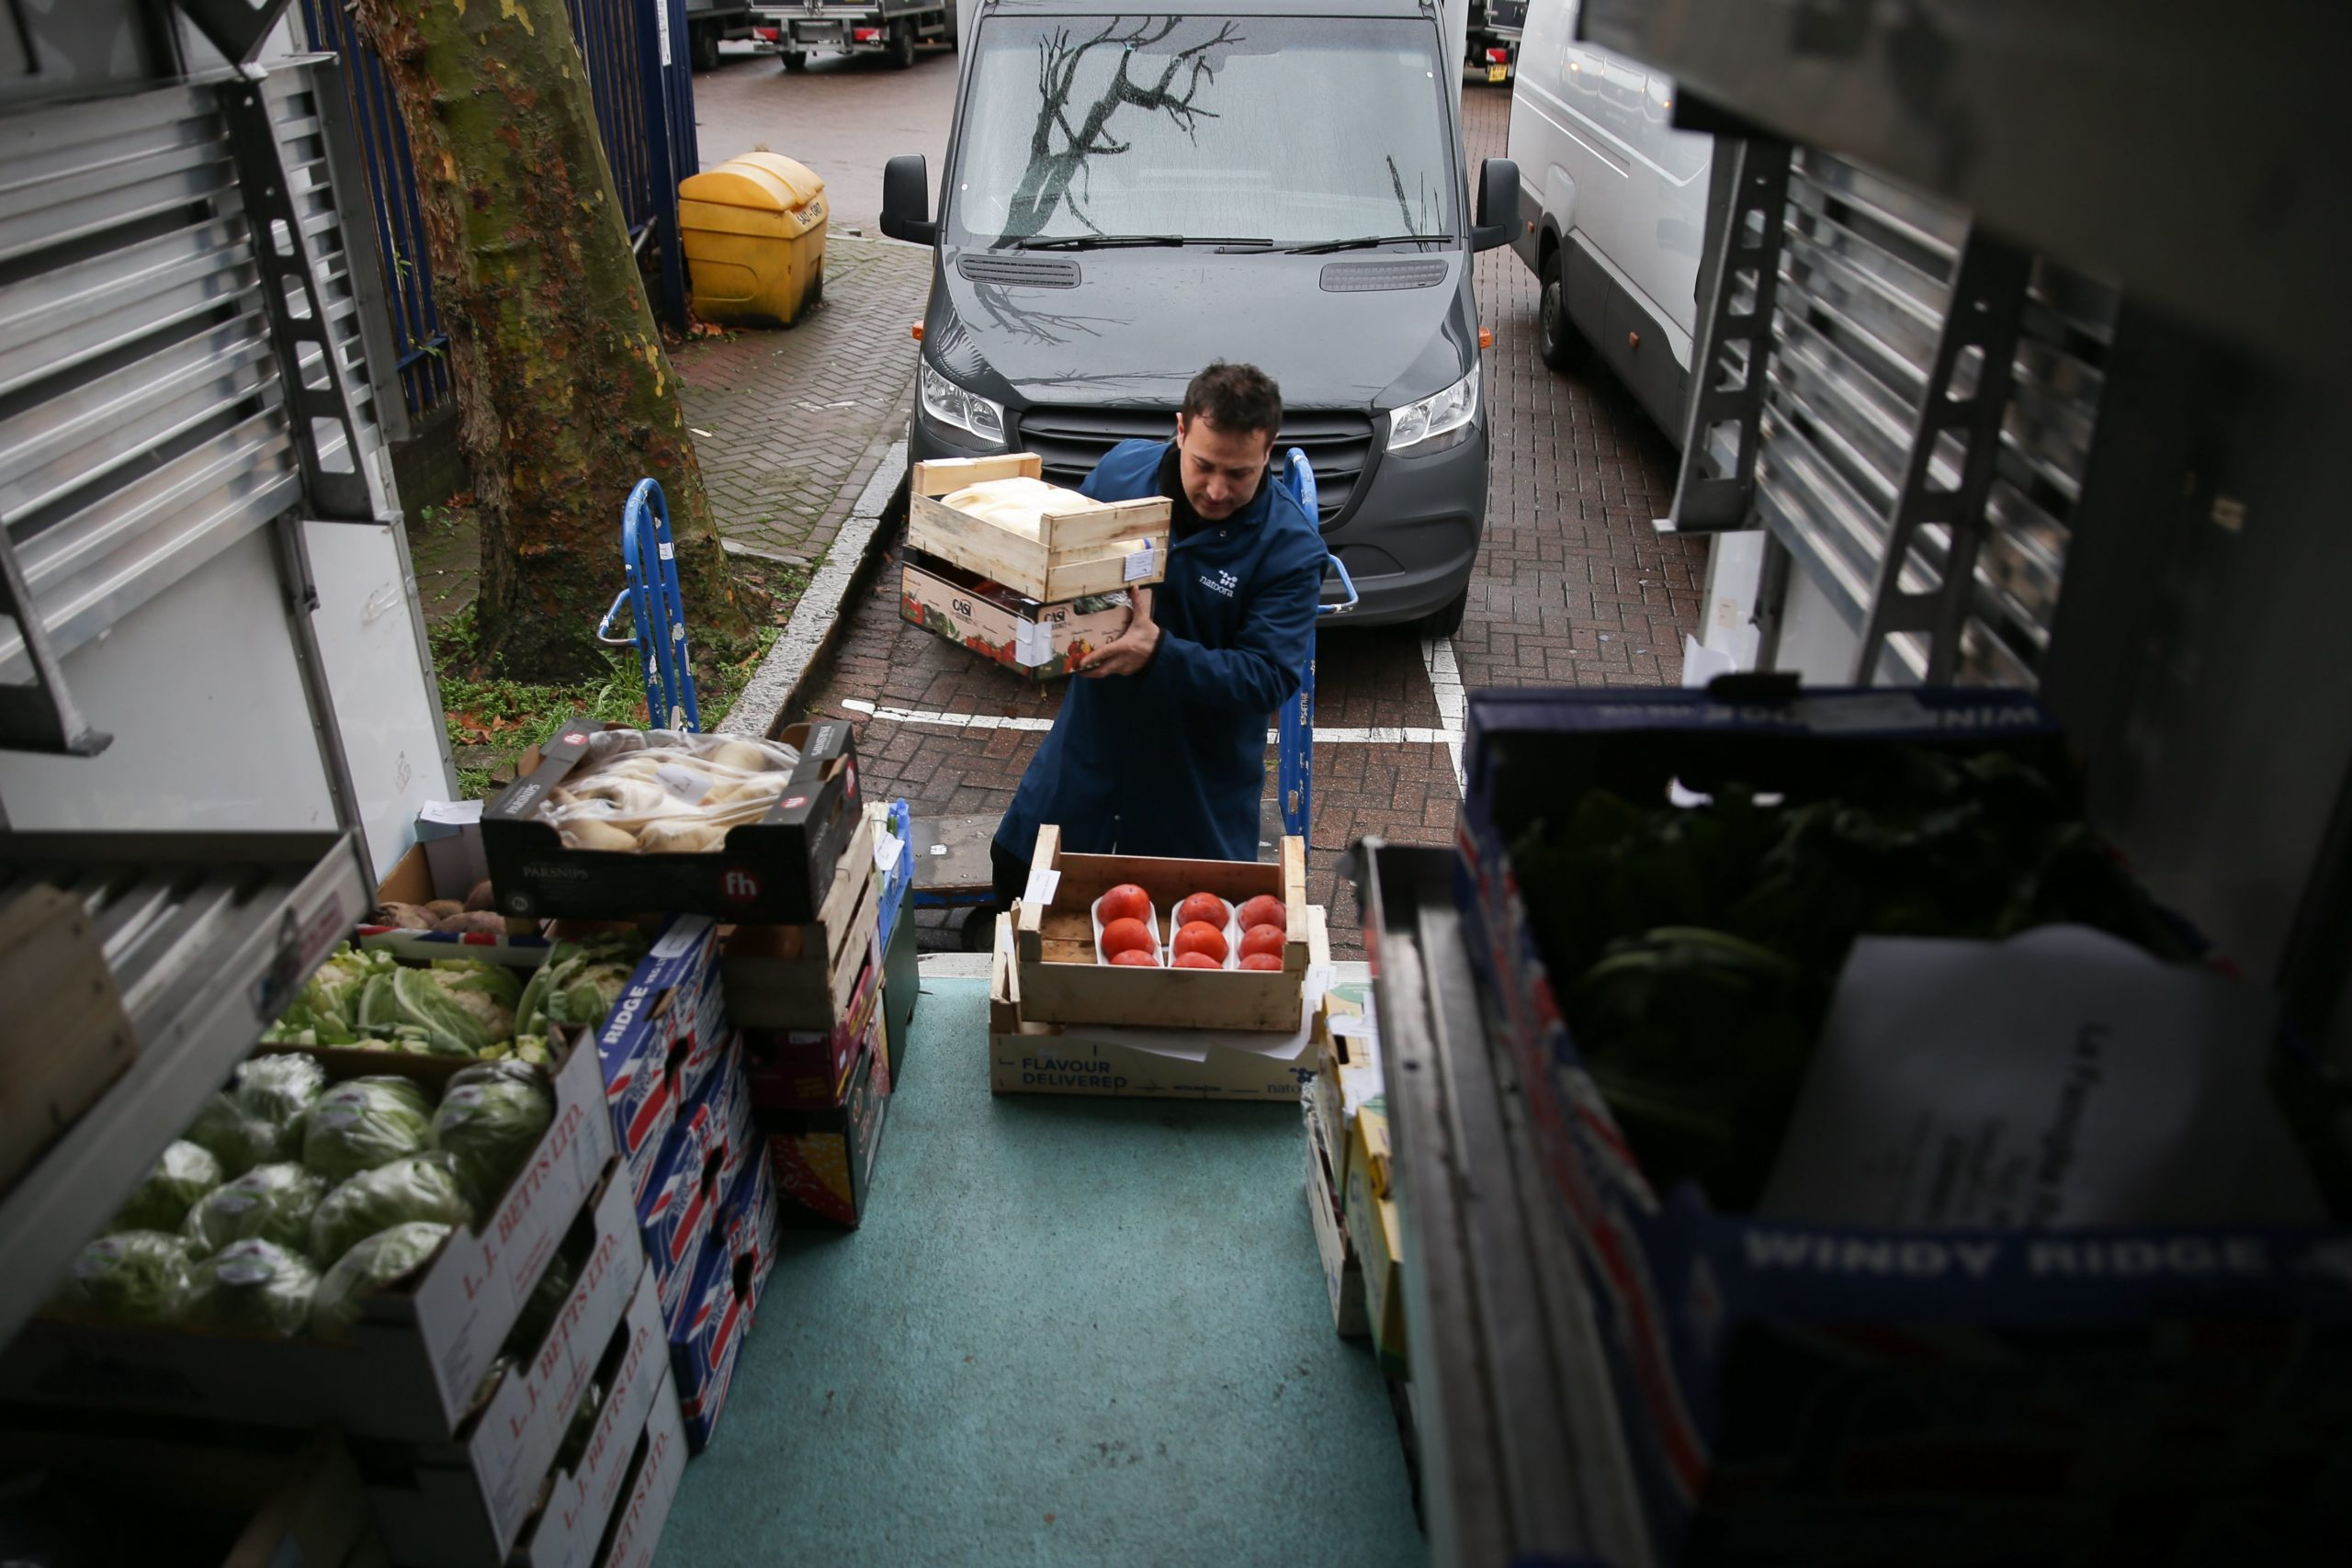 Workers load and unload boxes of fresh fruit and vegetables from trucks at the warehouse of Natoora, a fruit and vegetable distribution company, in south London on December 5, 2018. - Fruit and vegetable entrepreneur Franco Fubini knows all about the importance of goods arriving on time, as Brexit threatens to delay delivery of produce into and out of Britain. In an effort to prepare for a so-called hard Brexit following Britain's formal departure from the European Union on March 29, British companies are increasingly stating that they are preparing to stockpile items. While for some this is fairly straightforward, in the case of Fubini's company Natoora -- predominantly a wholesaler but also a shop retailer and food producer -- stockpiling fresh fruits and vegetables is not viable. (Photo by Daniel LEAL-OLIVAS / AFP) (Photo credit should read DANIEL LEAL-OLIVAS/AFP via Getty Images)